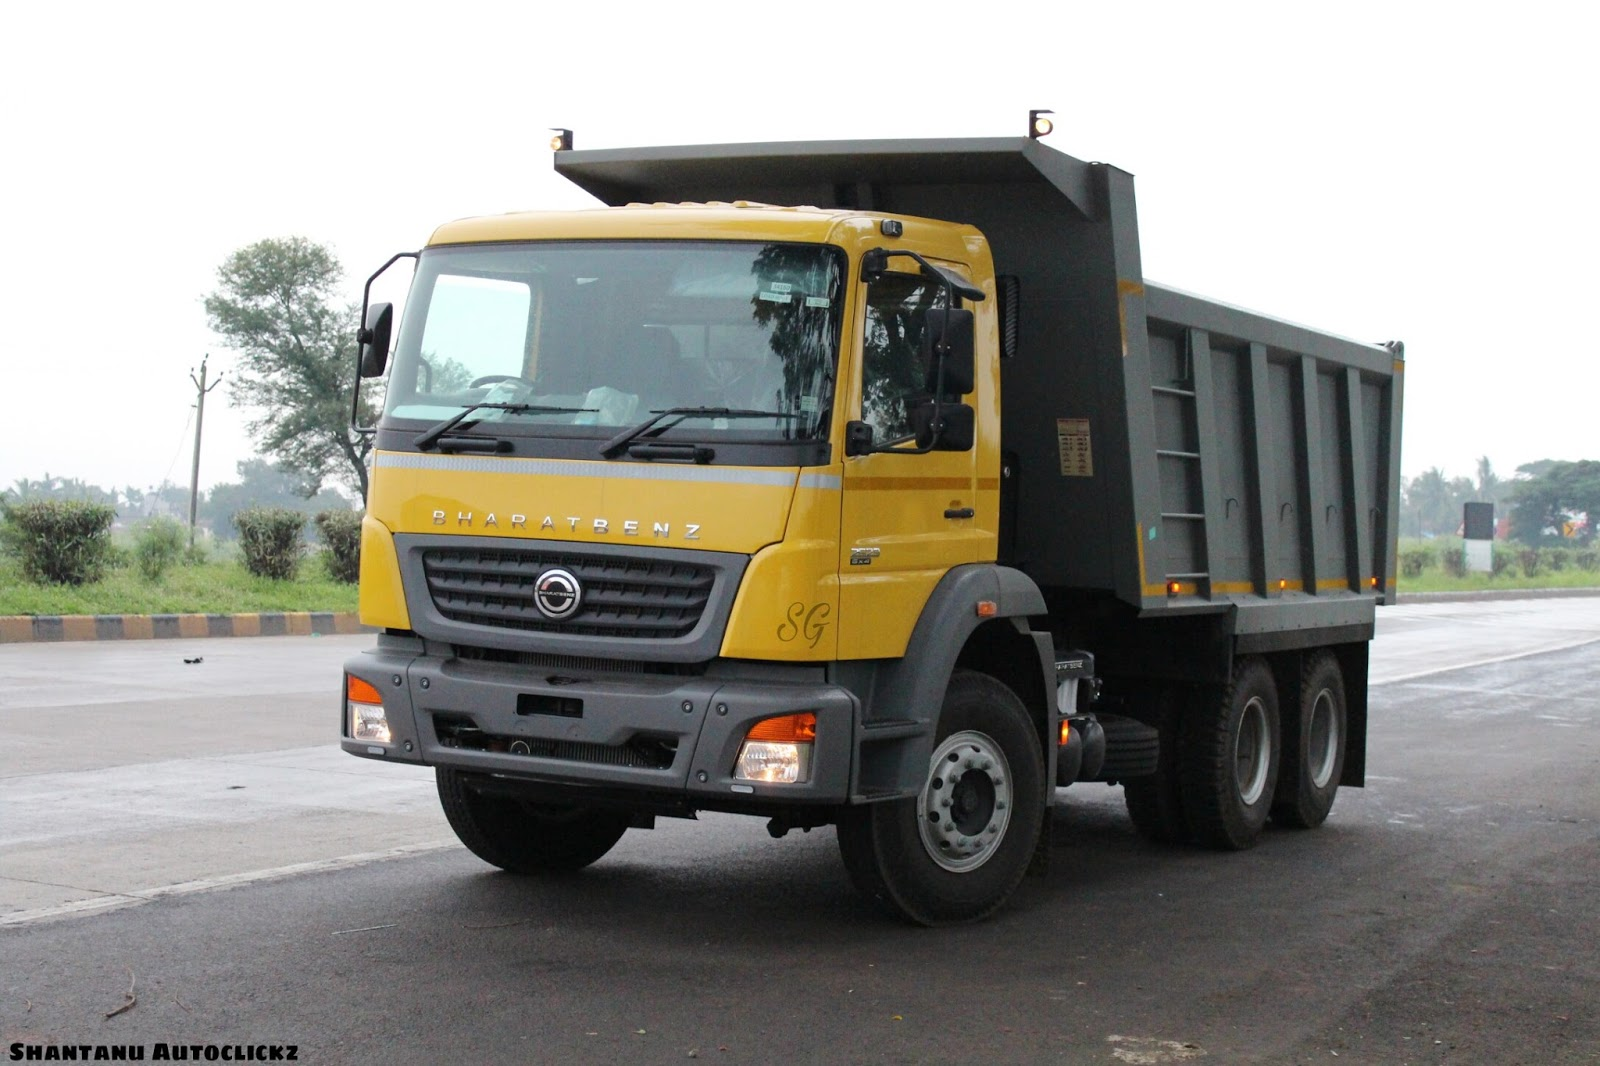 A freshly delivered Bharat-Benz 2523 (6x4) Heavy duty Tipper posing on NH-4  near Kini Toll Plaza, Kolhapur, Maharashtra.